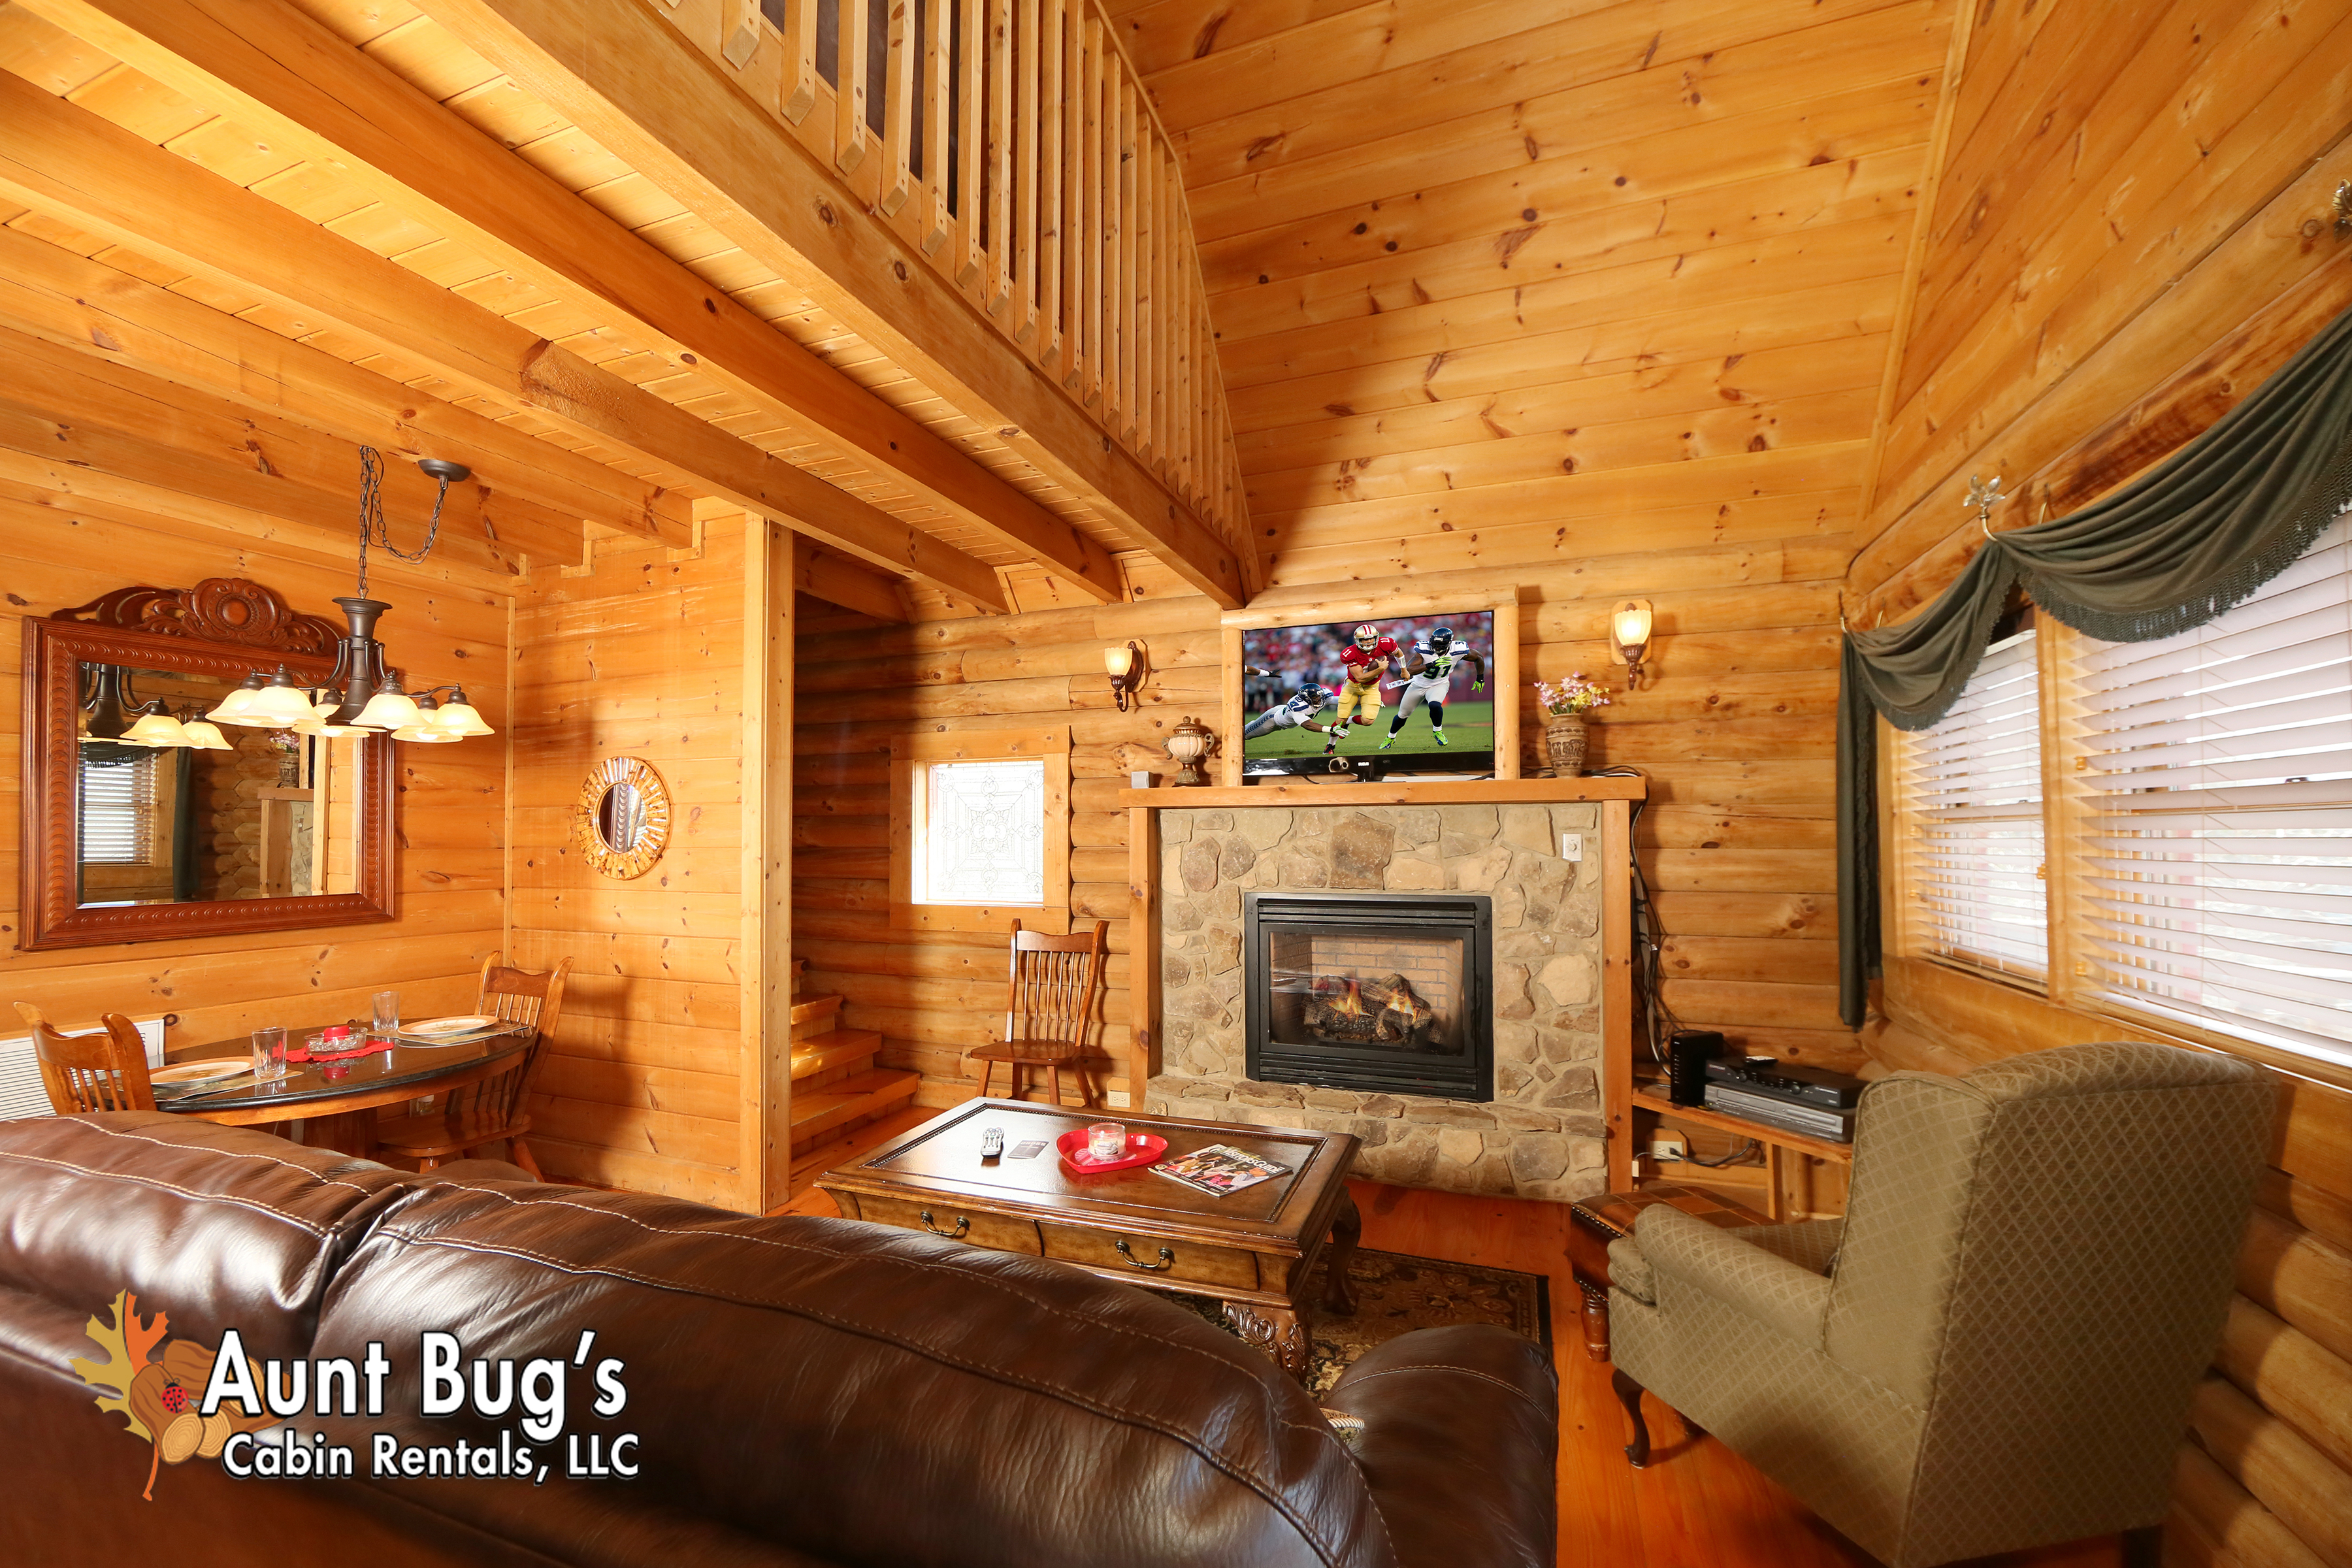 dale unit rentals vacations grand vrp ocean drive hollow jeans strand jean s home dream cabin cabins